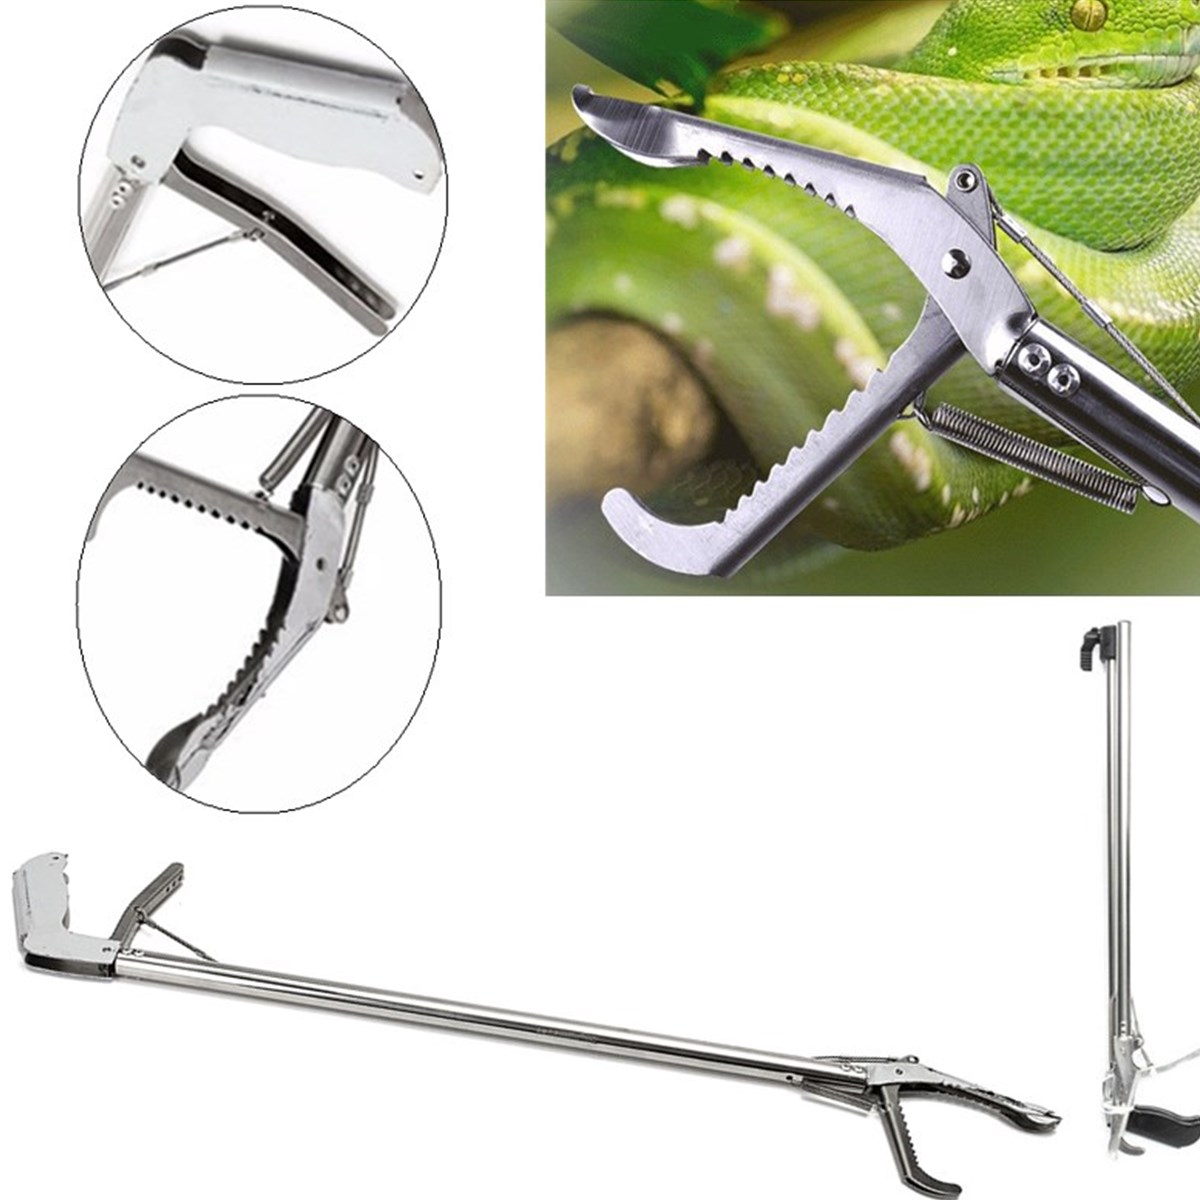 75CM Heavy Duty Lizards Foldable Reptile Snake Tongs Stick Grabber Catcher Wide Jaw Tool Heavy Snake Duty Pest Control Products